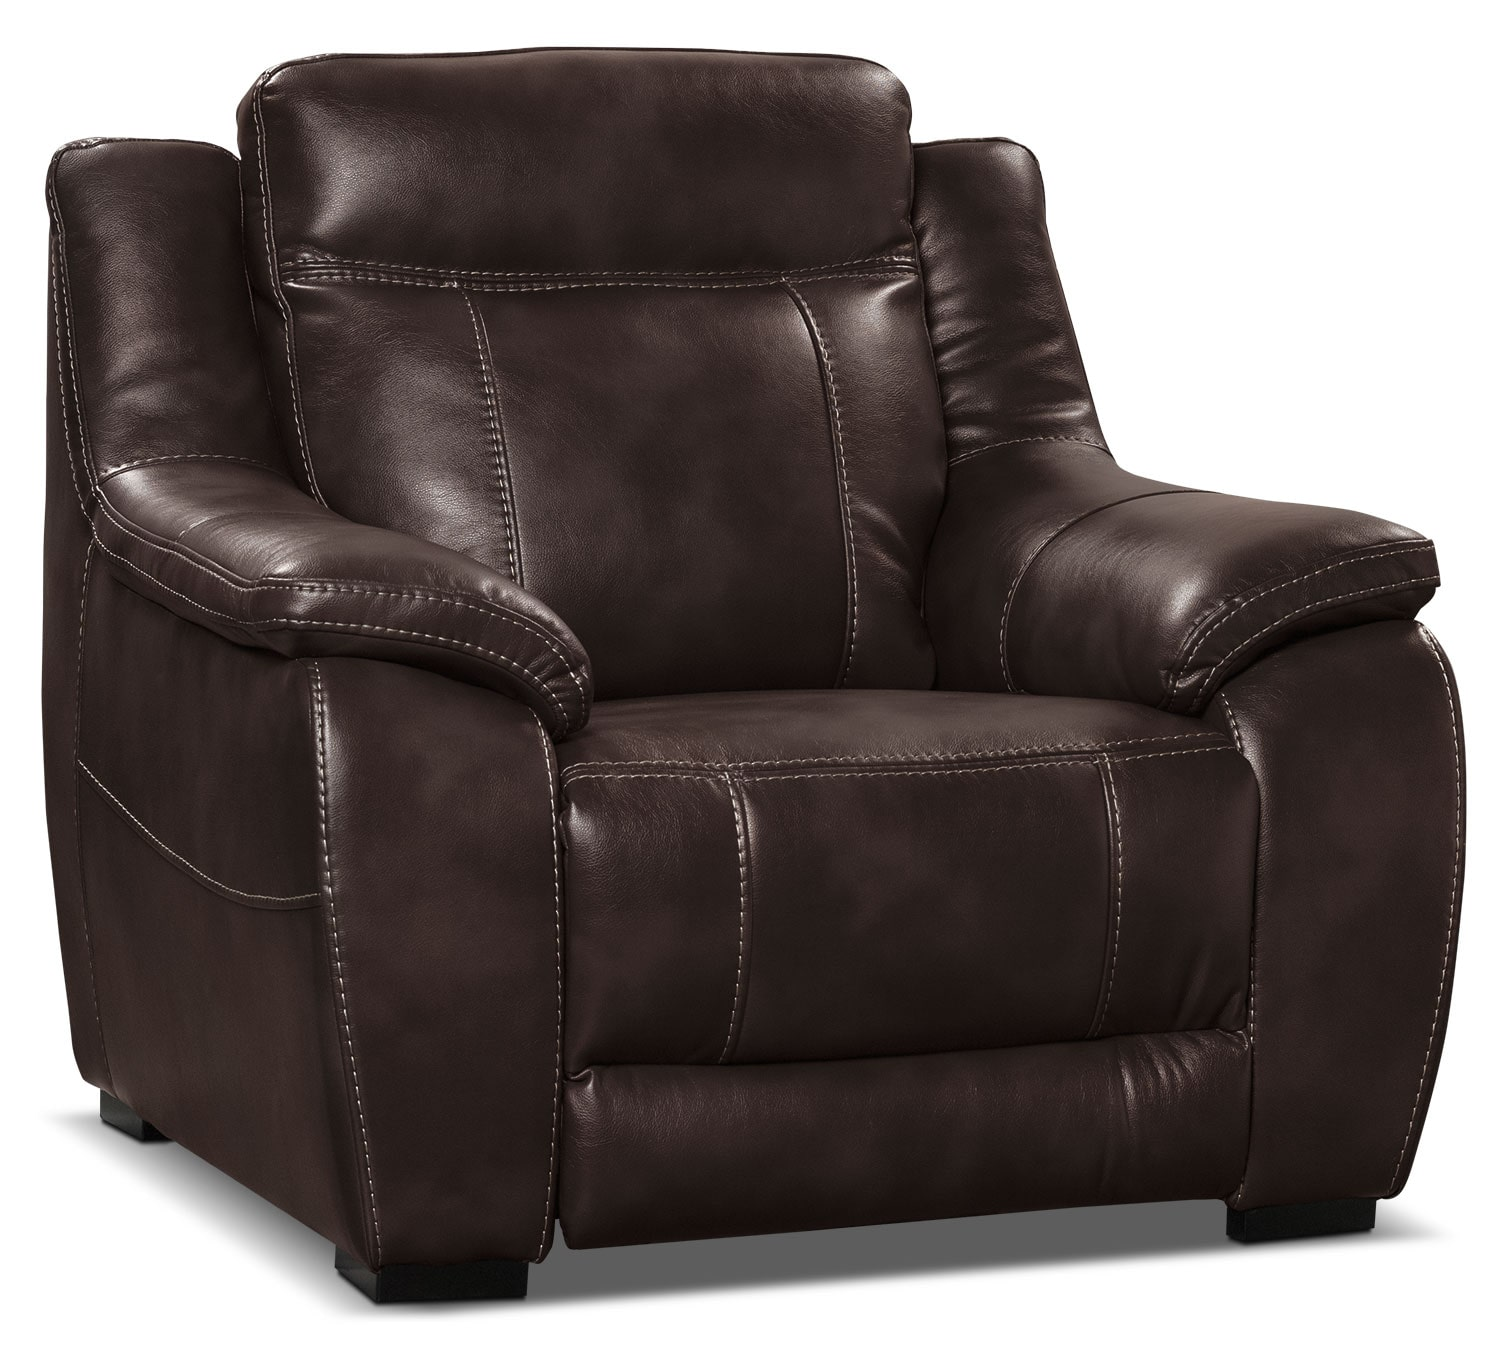 Novo Leather-Look Fabric Chair – Brown